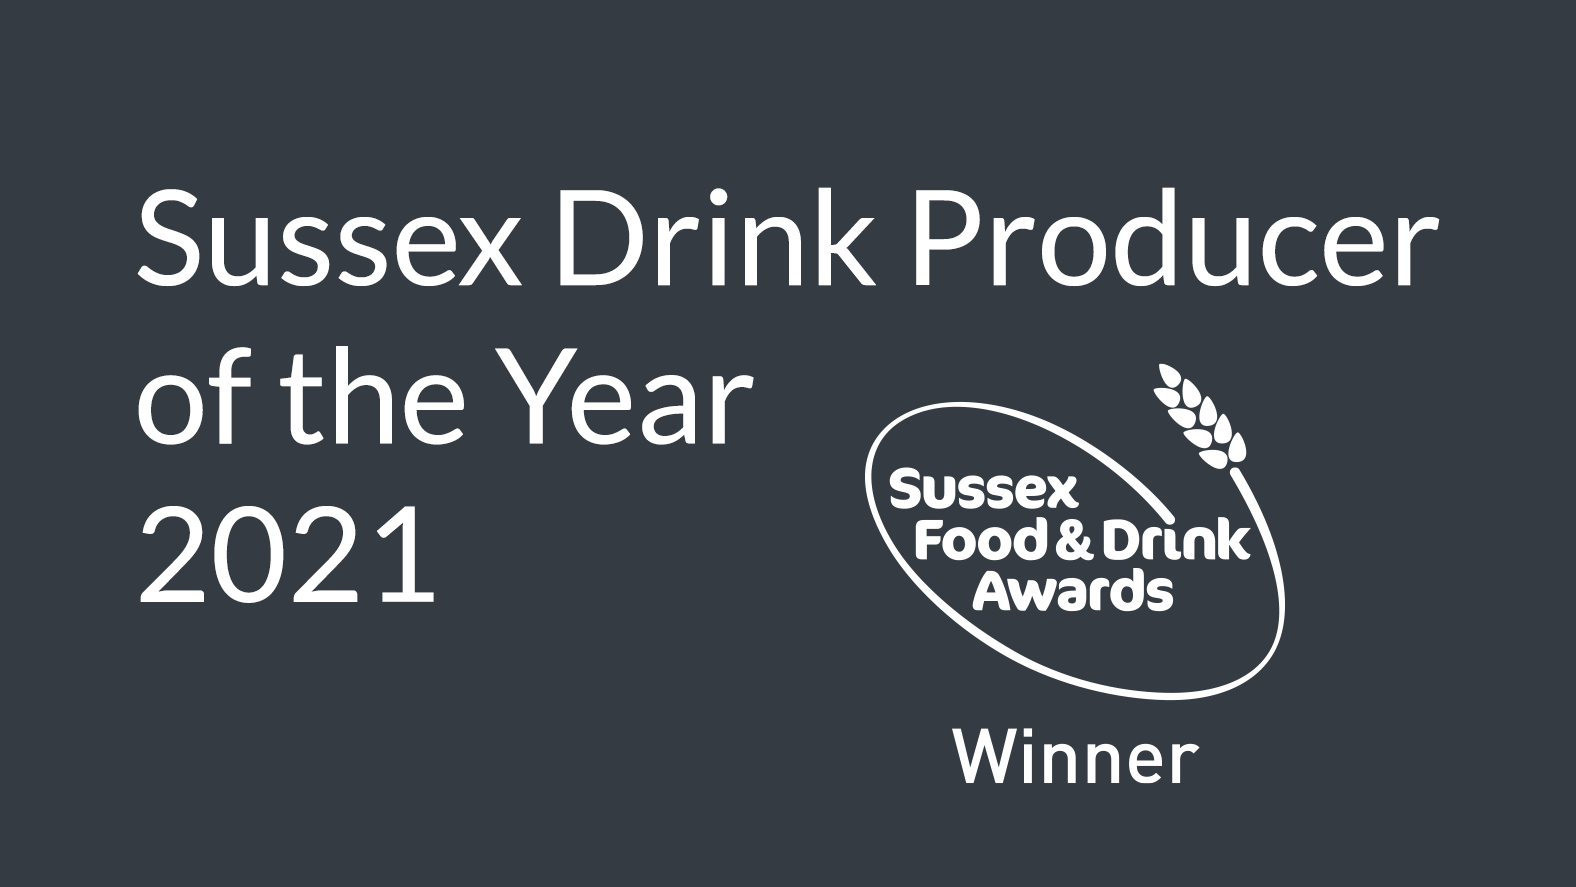 Sussex Drink Producer of the Year 2021